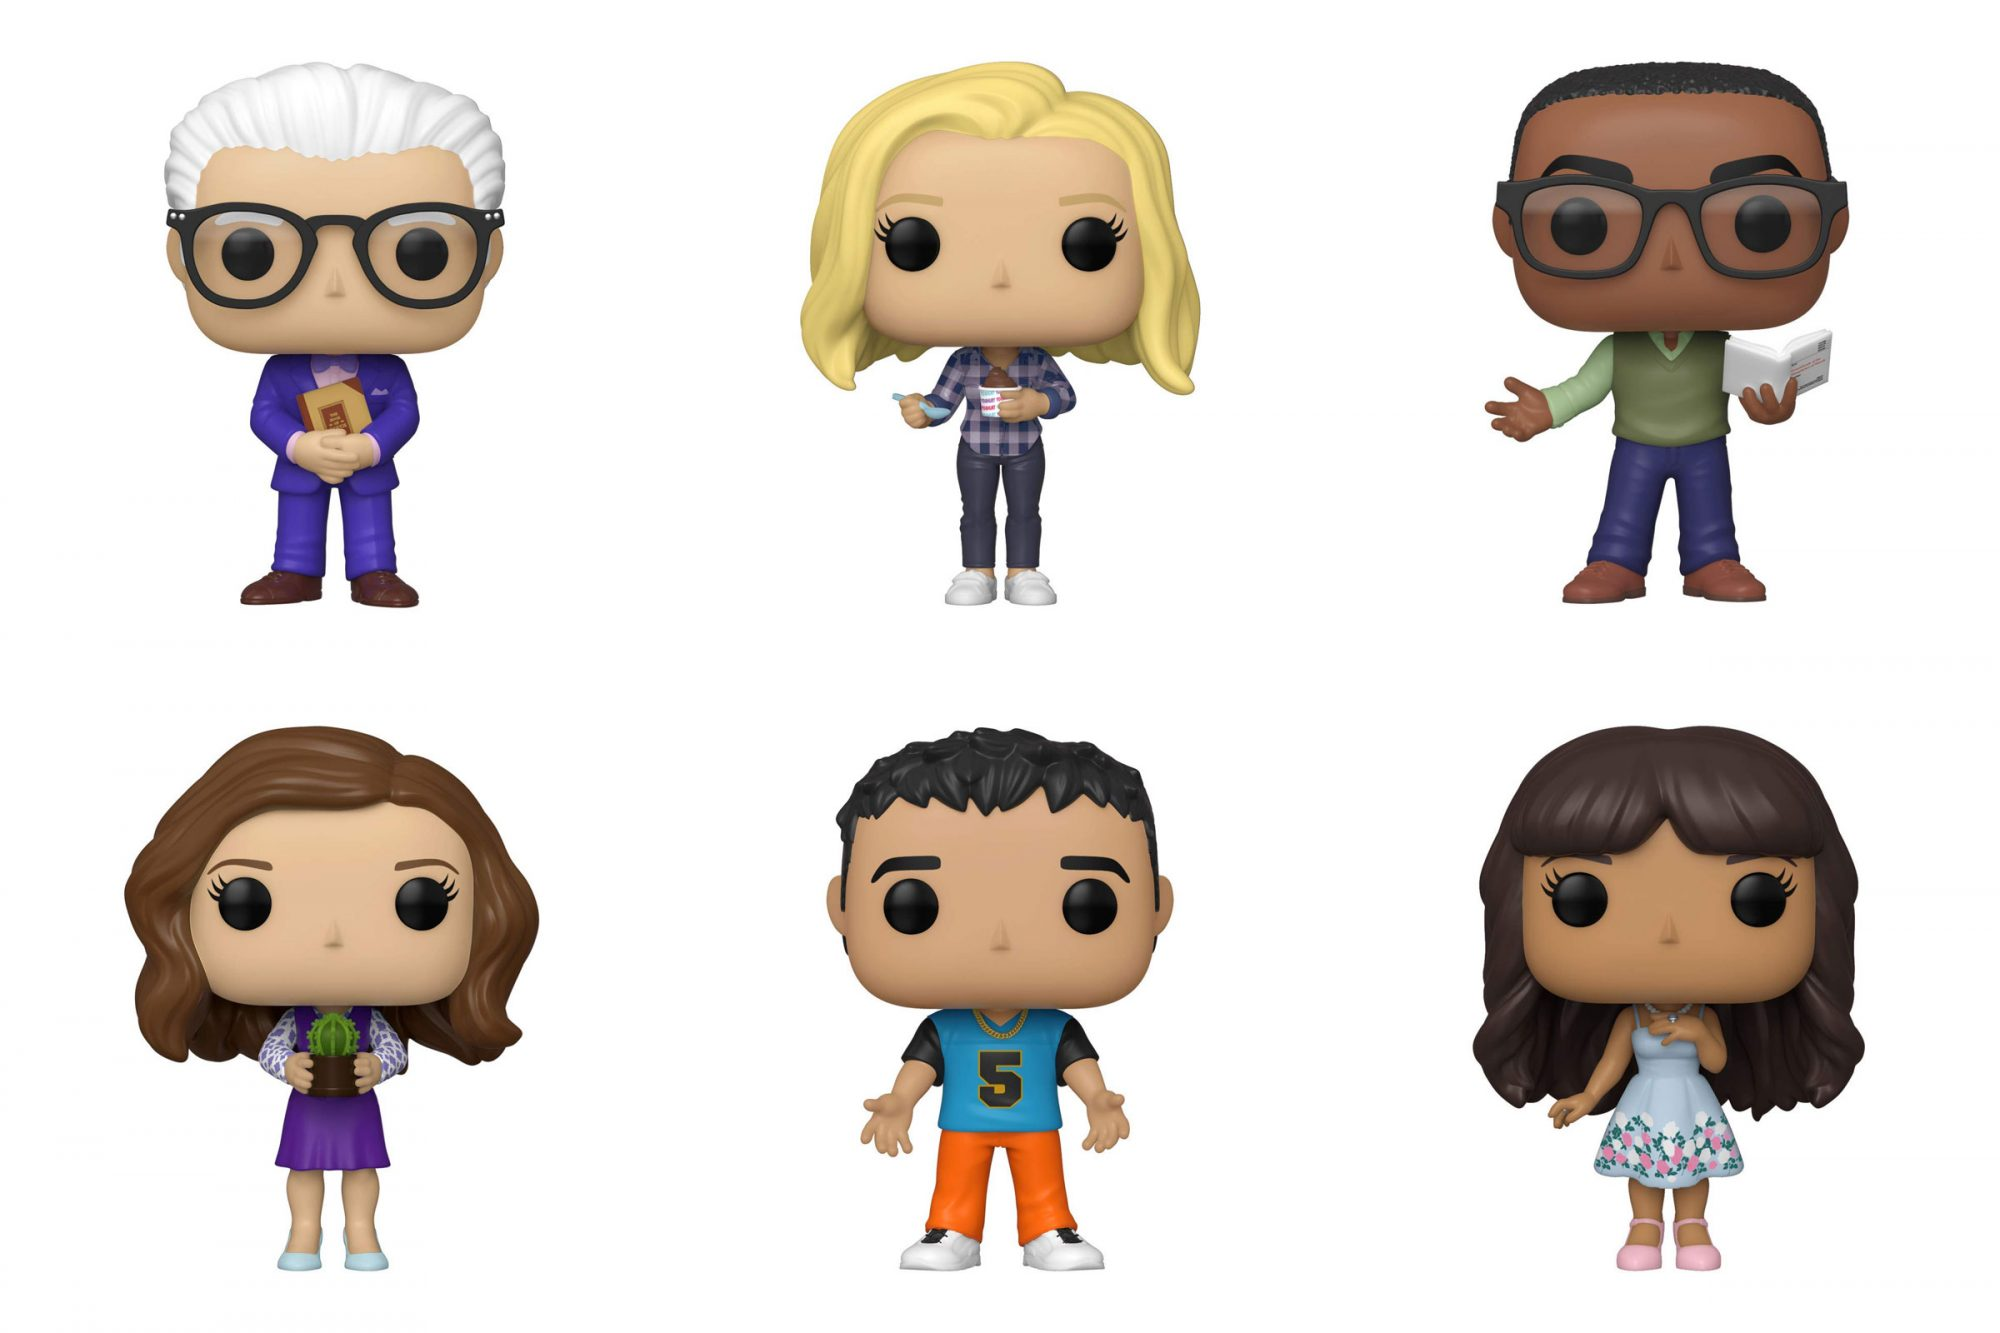 The Good Place Funko Pops